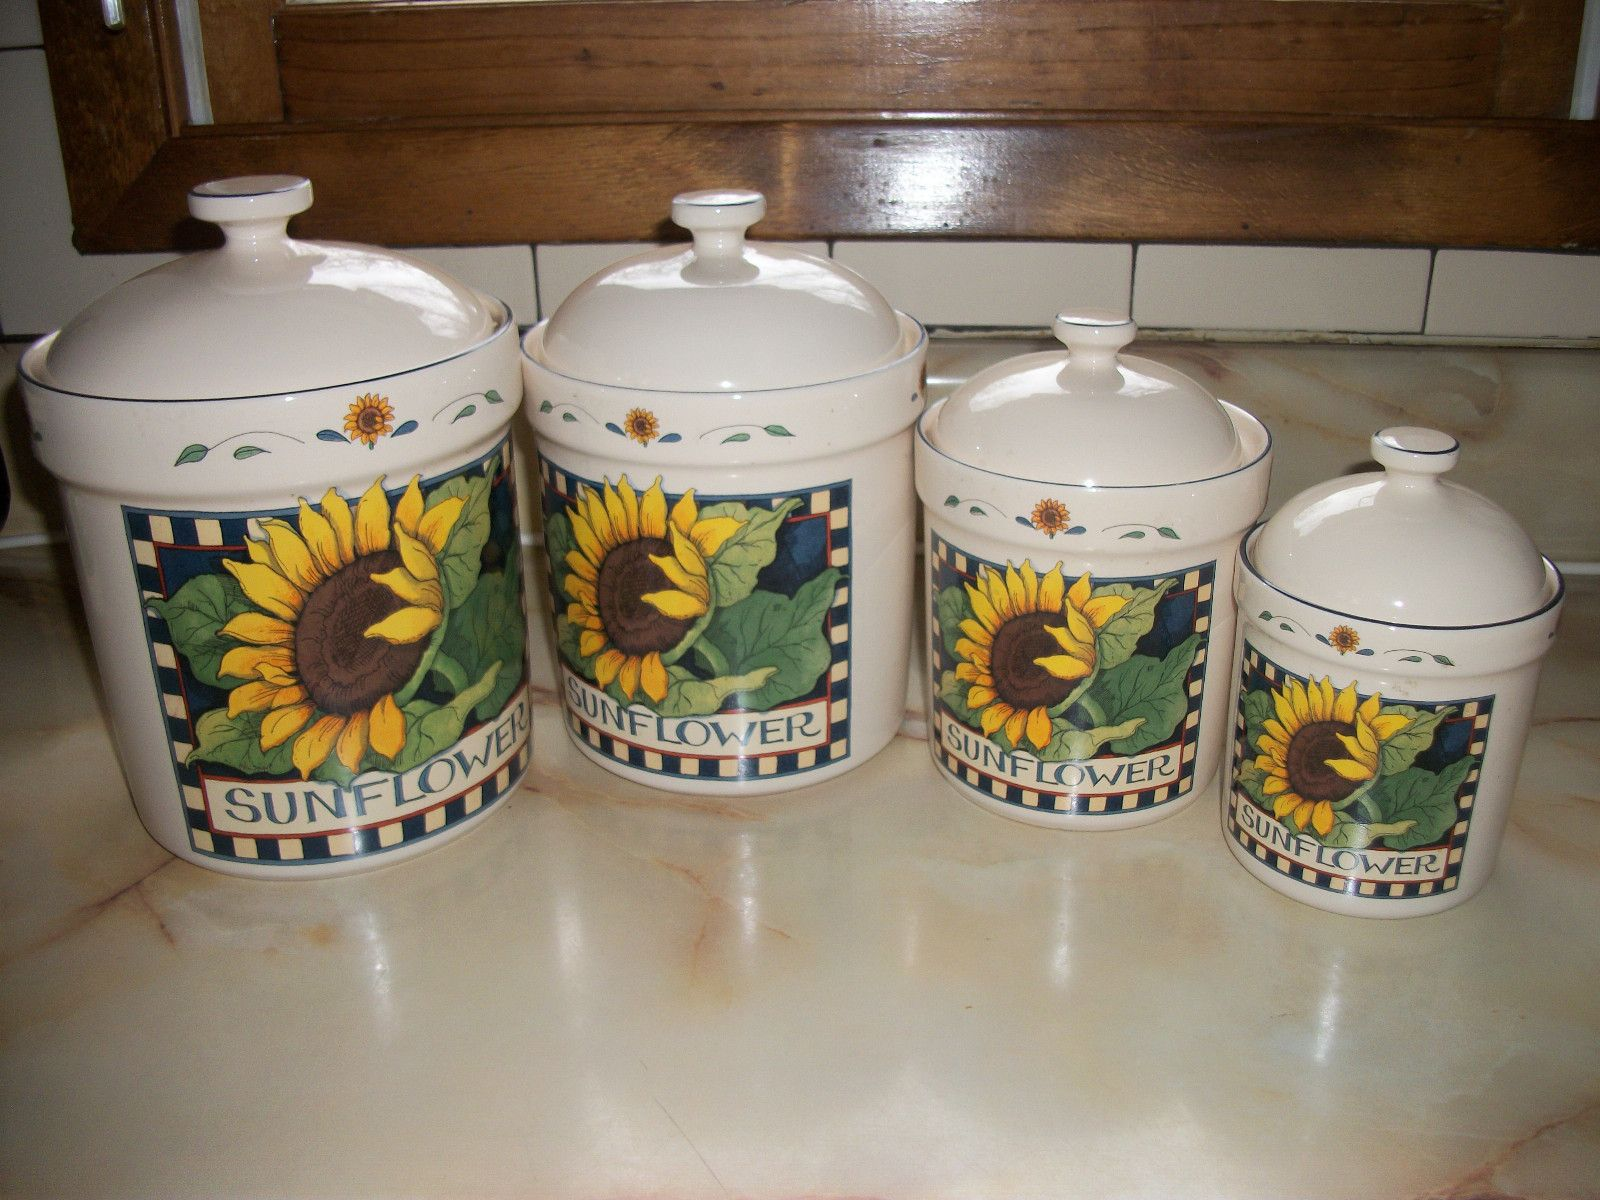 Certified international parisian fruit canister by susan winget set - Susan Winget Sunflower Canisters